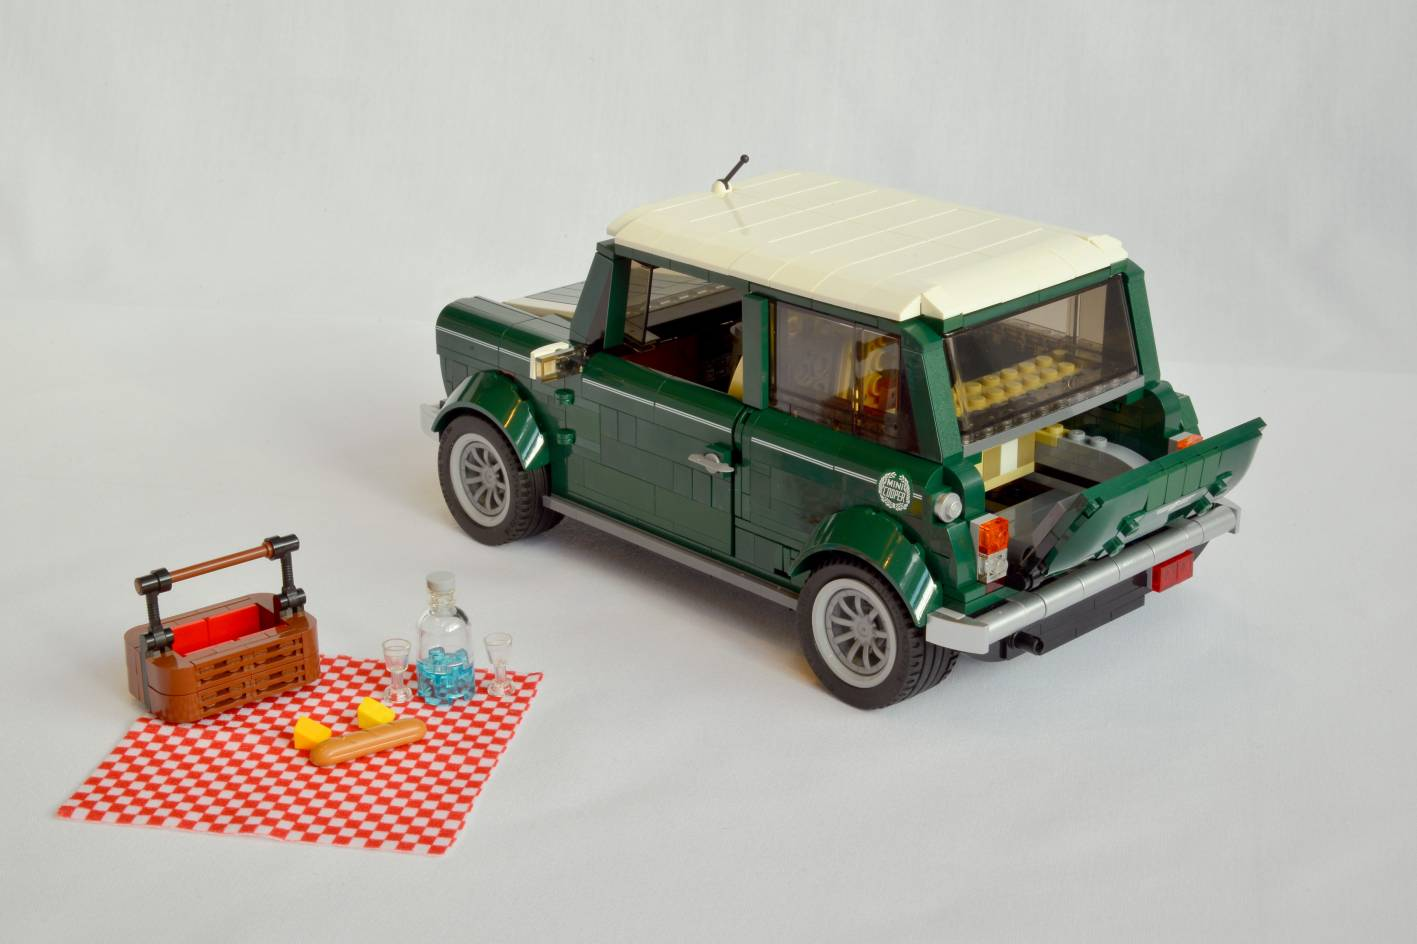 lego adds mini cooper to creator expert series. Black Bedroom Furniture Sets. Home Design Ideas